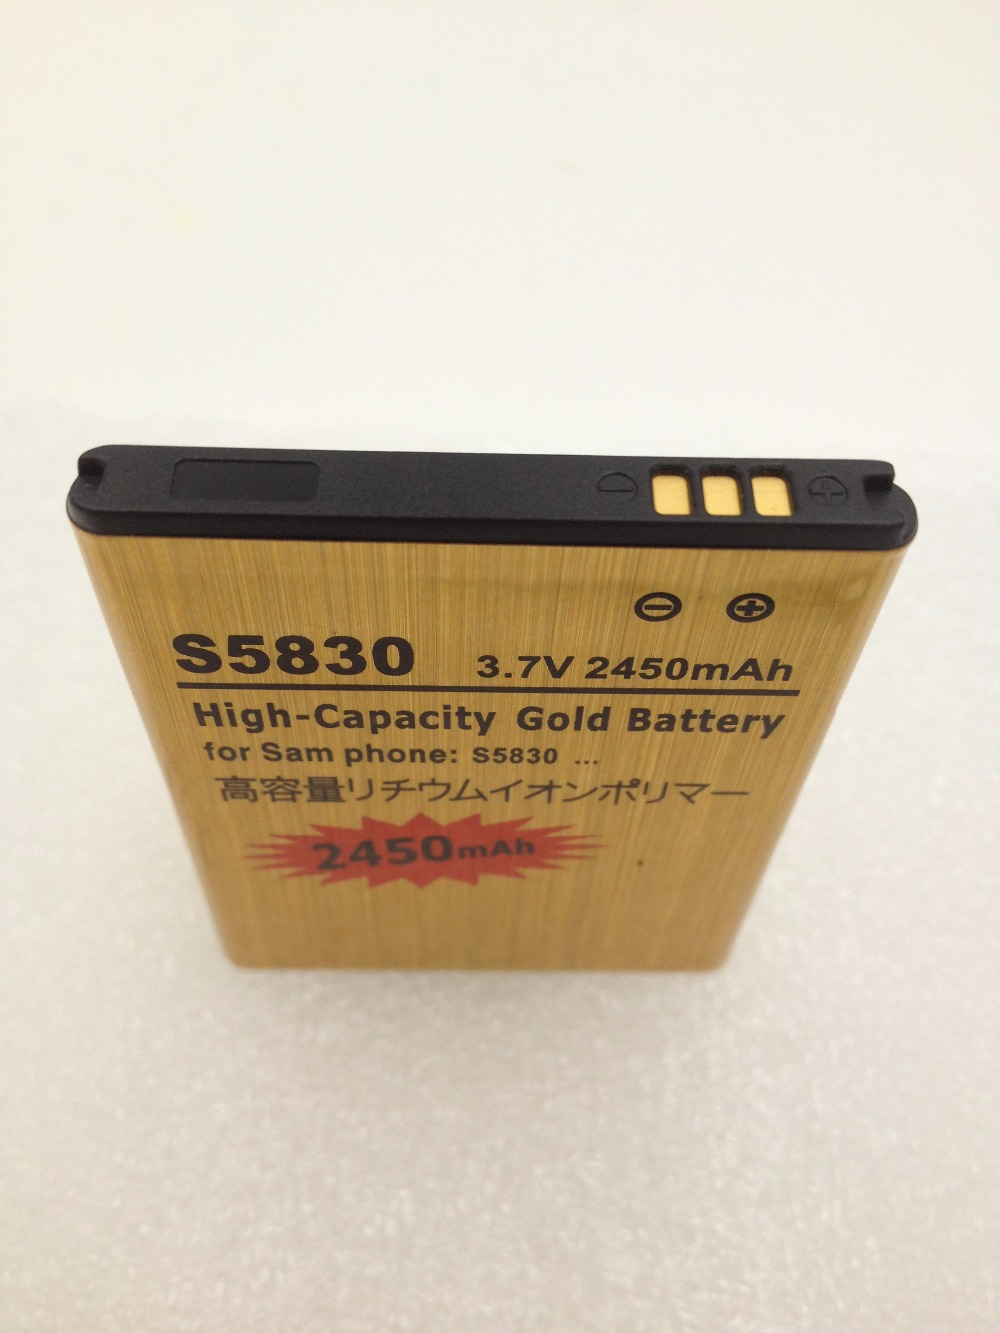 2450mAh High Capacity Gold Battery For Samsung Galaxy Ace S5660 S5670 S6500 S7500 I569 I579 S5838